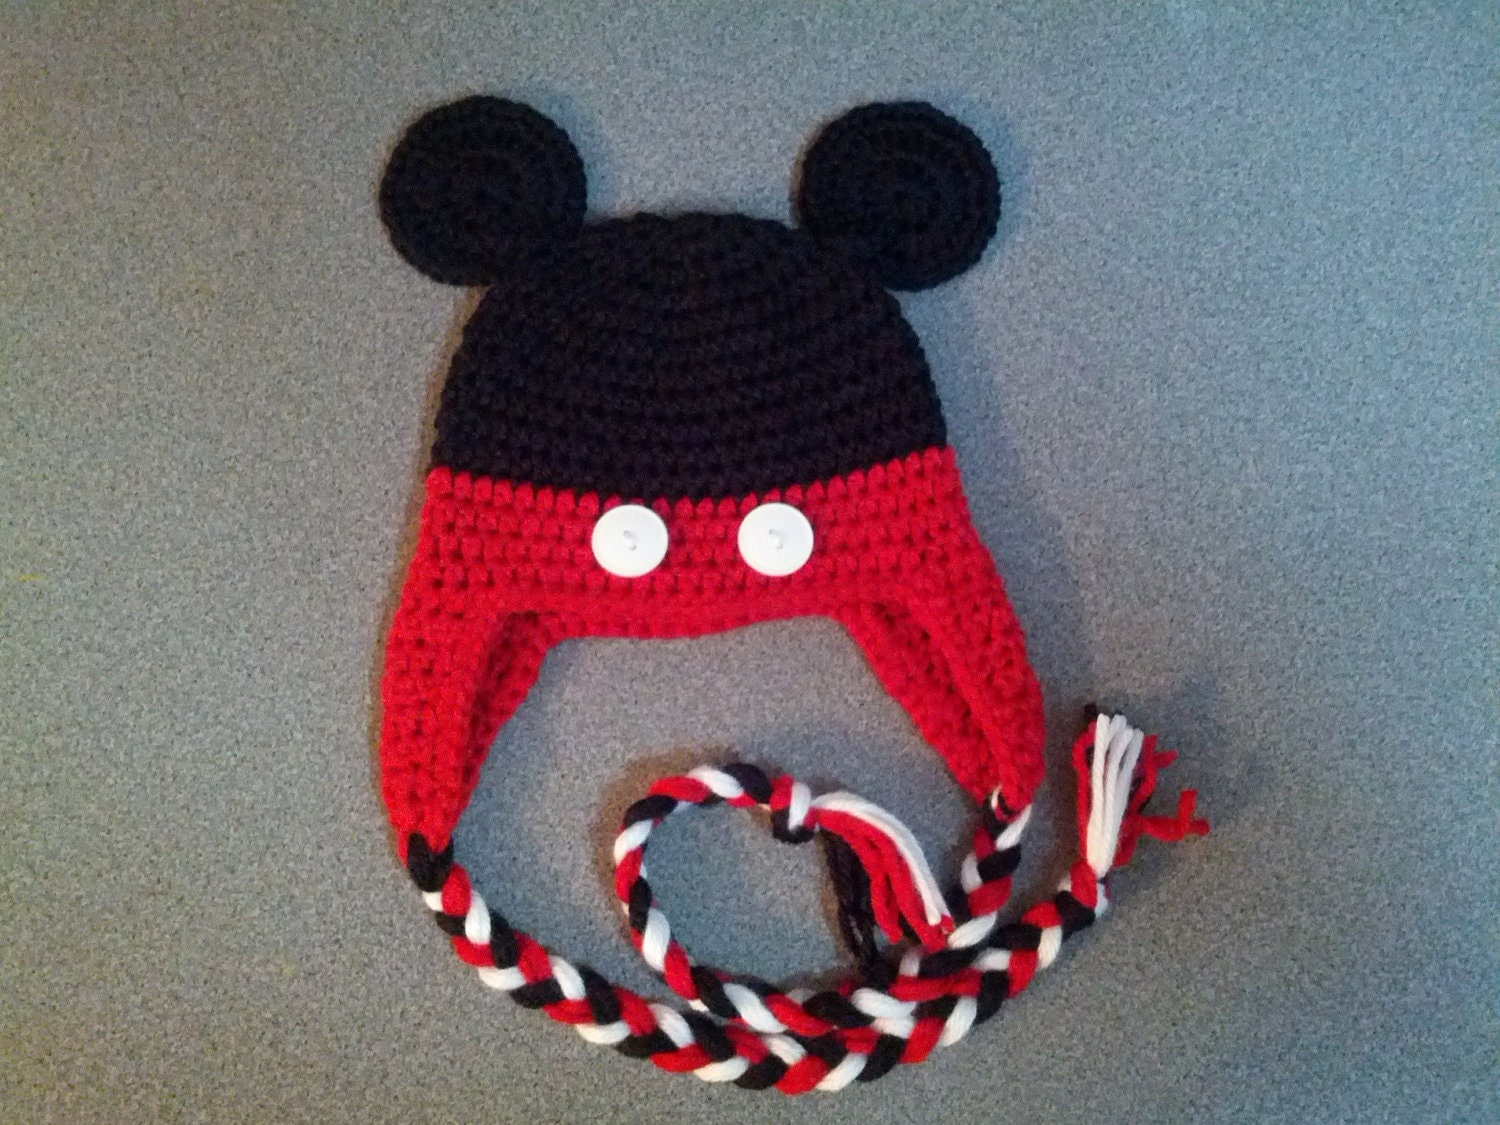 You searched for: mickey mouse baby hat! Etsy is the home to thousands of handmade, vintage, and one-of-a-kind products and gifts related to your search. No matter what you're looking for or where you are in the world, our global marketplace of sellers can help you .